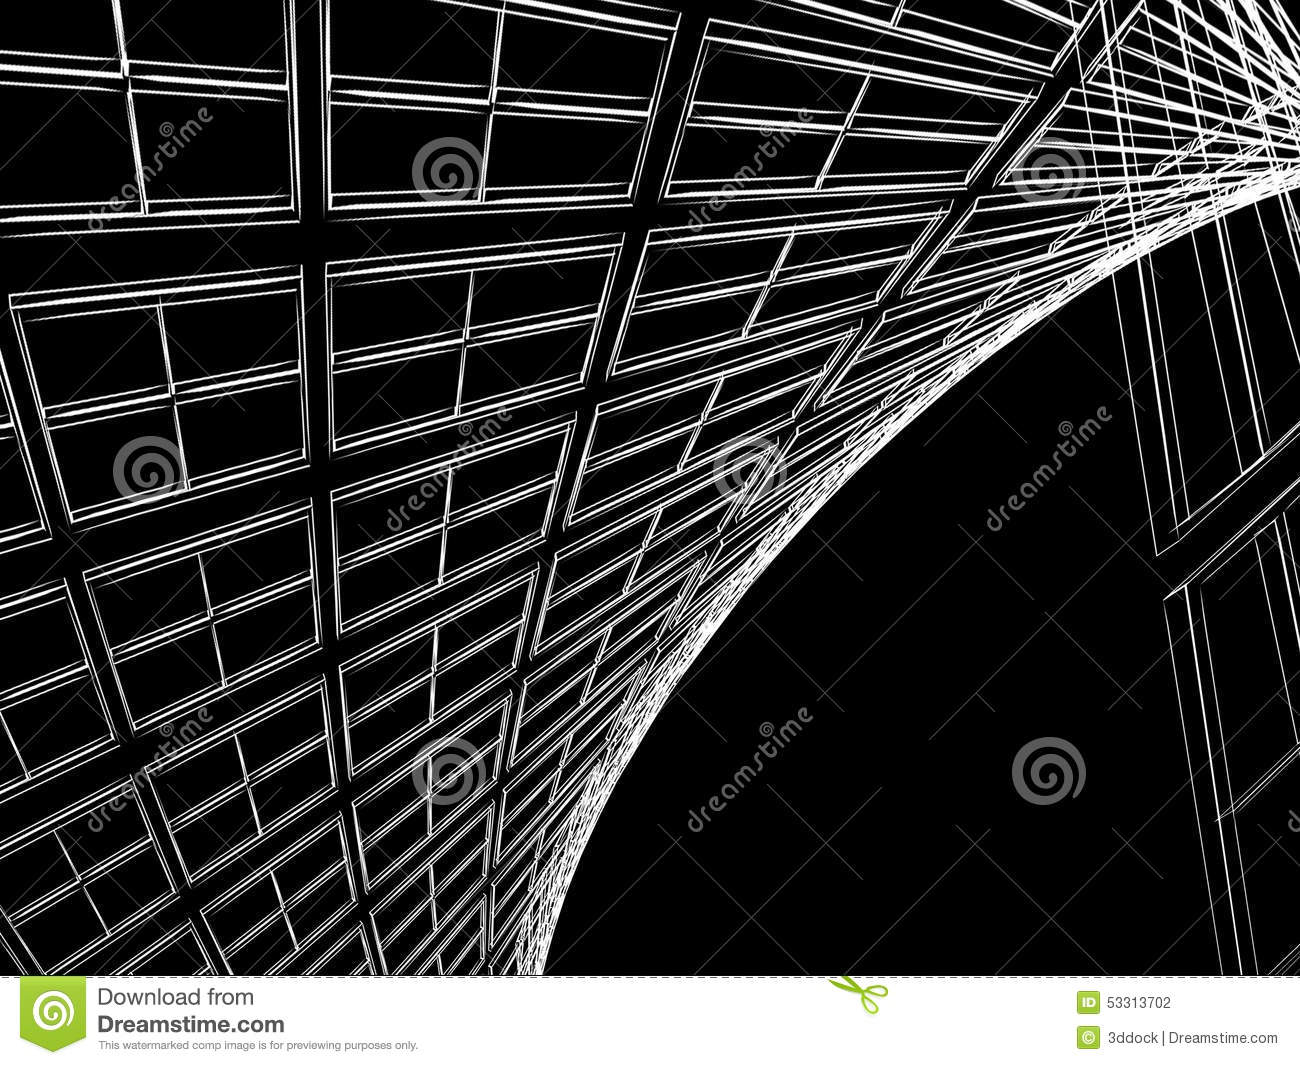 Abstract architectural construction stock illustration download abstract architectural construction stock illustration illustration of blueprint architecture 53313702 malvernweather Gallery